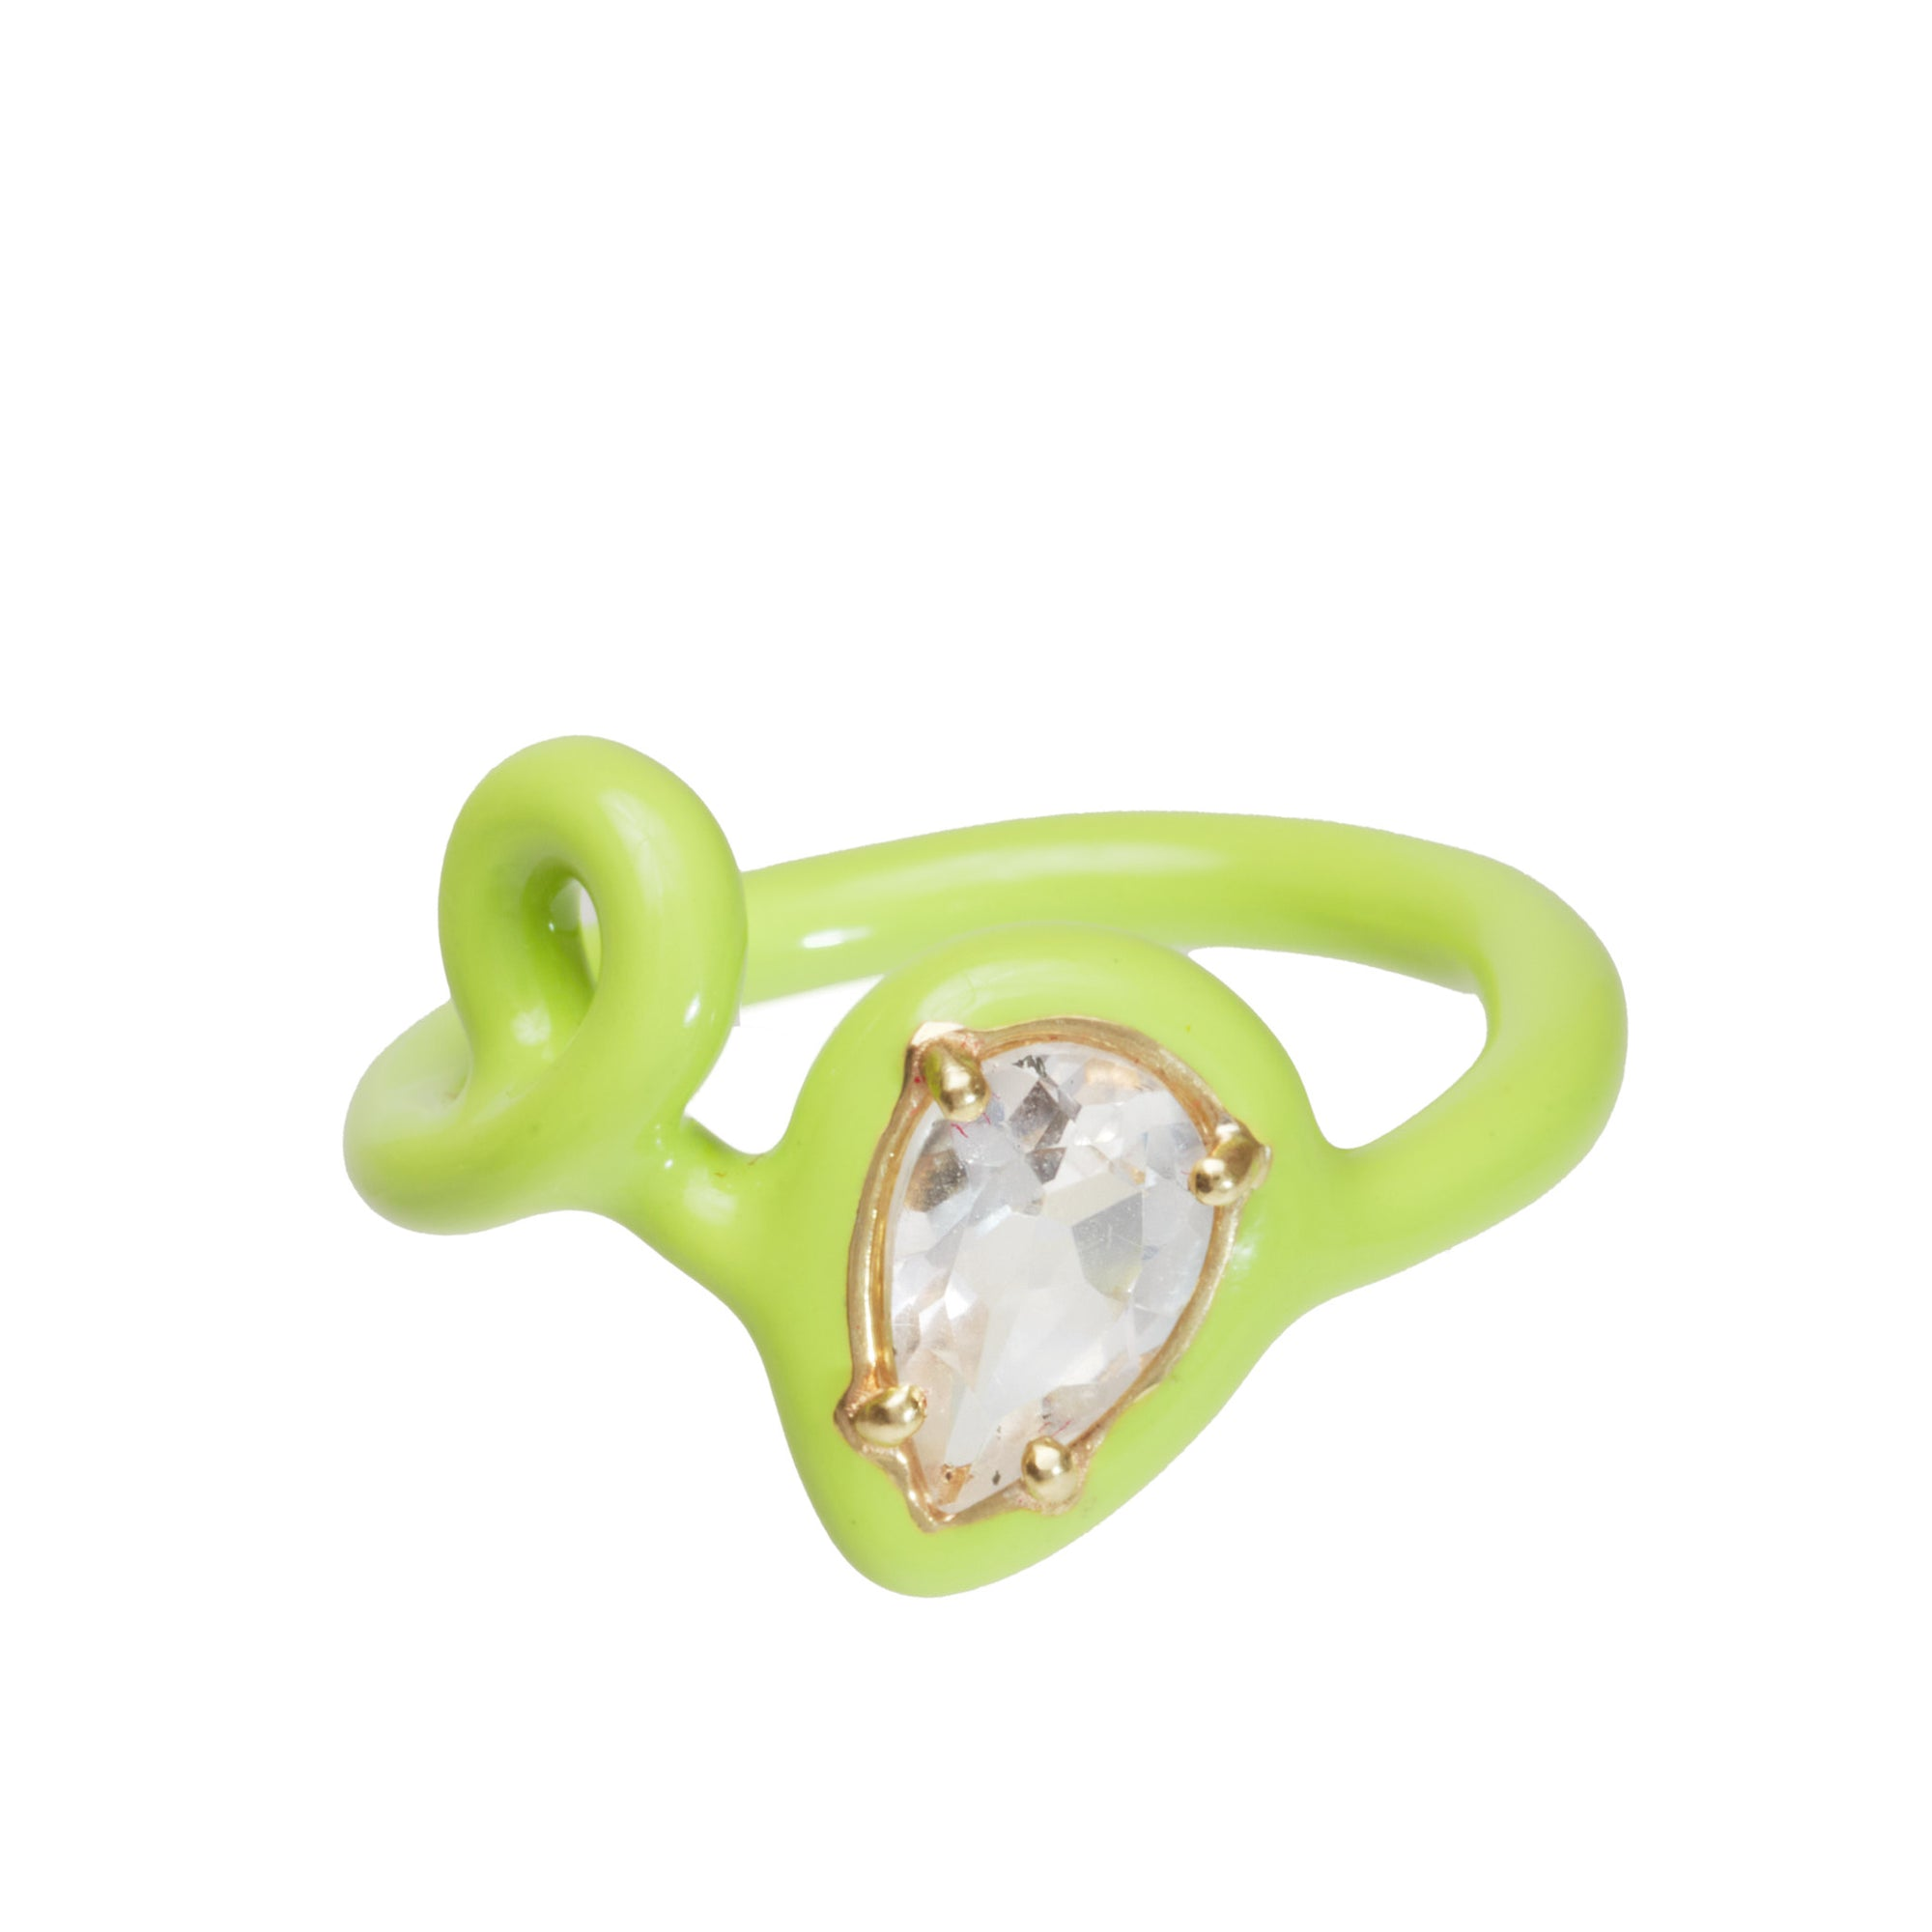 Bea Bongiasca CAN YOU DIG IT? YEAH, BABY! GREEN STACKING RINGS